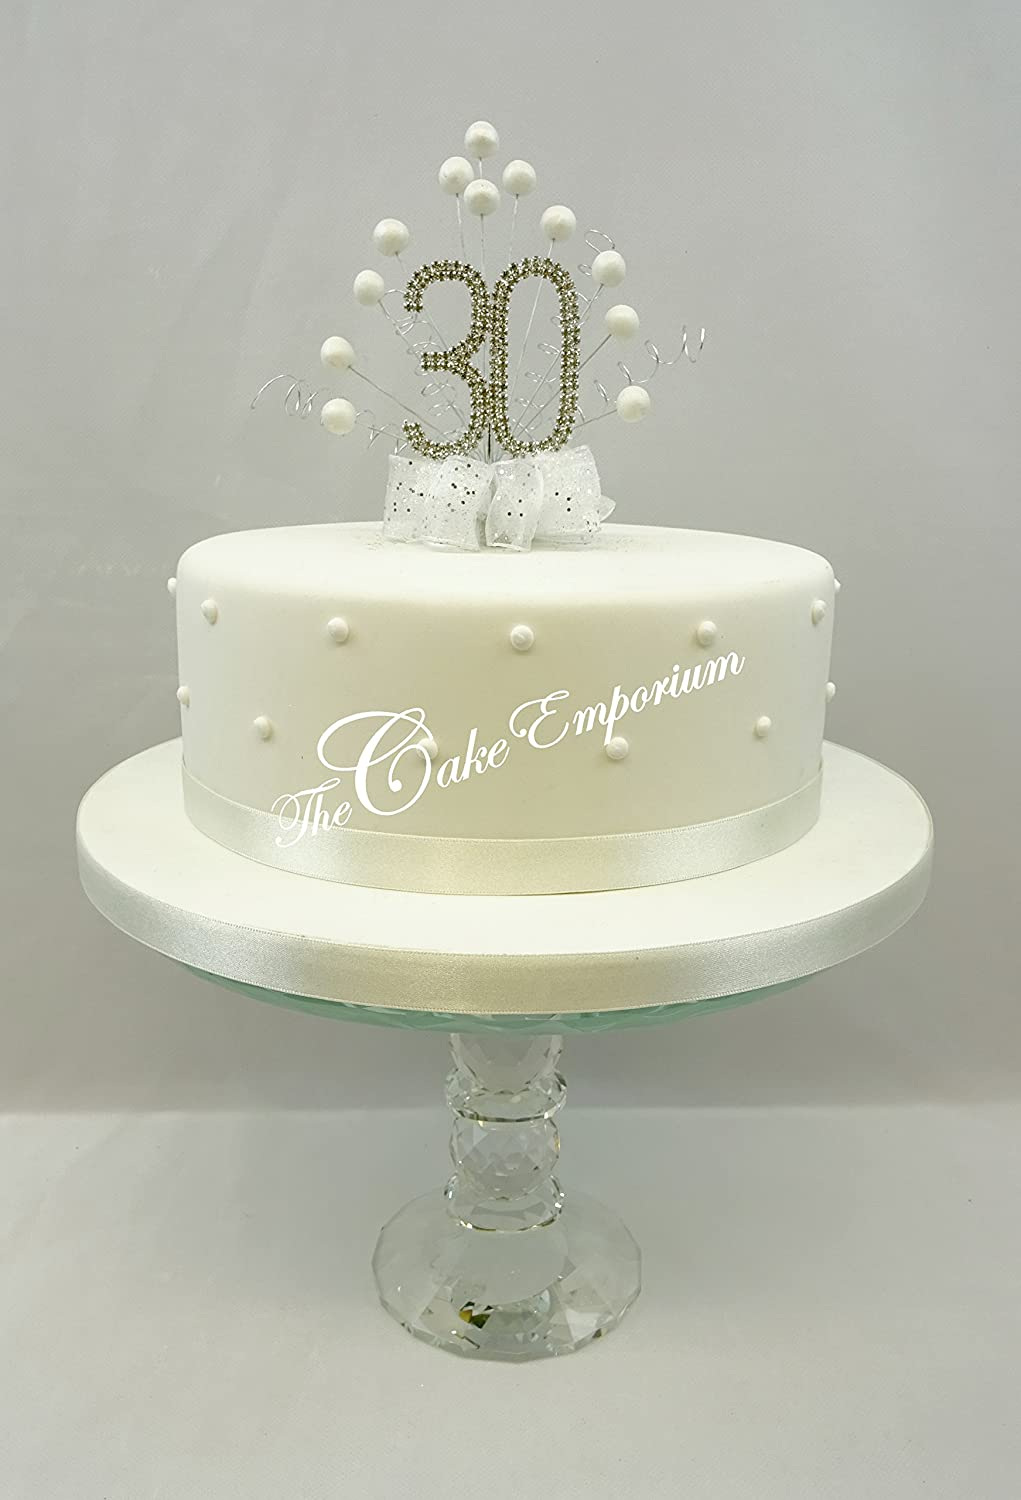 CAKE DECORATION PEARL 30th WEDDING ANNIVERSARY DIAMANTE CAKE TOPPER ...